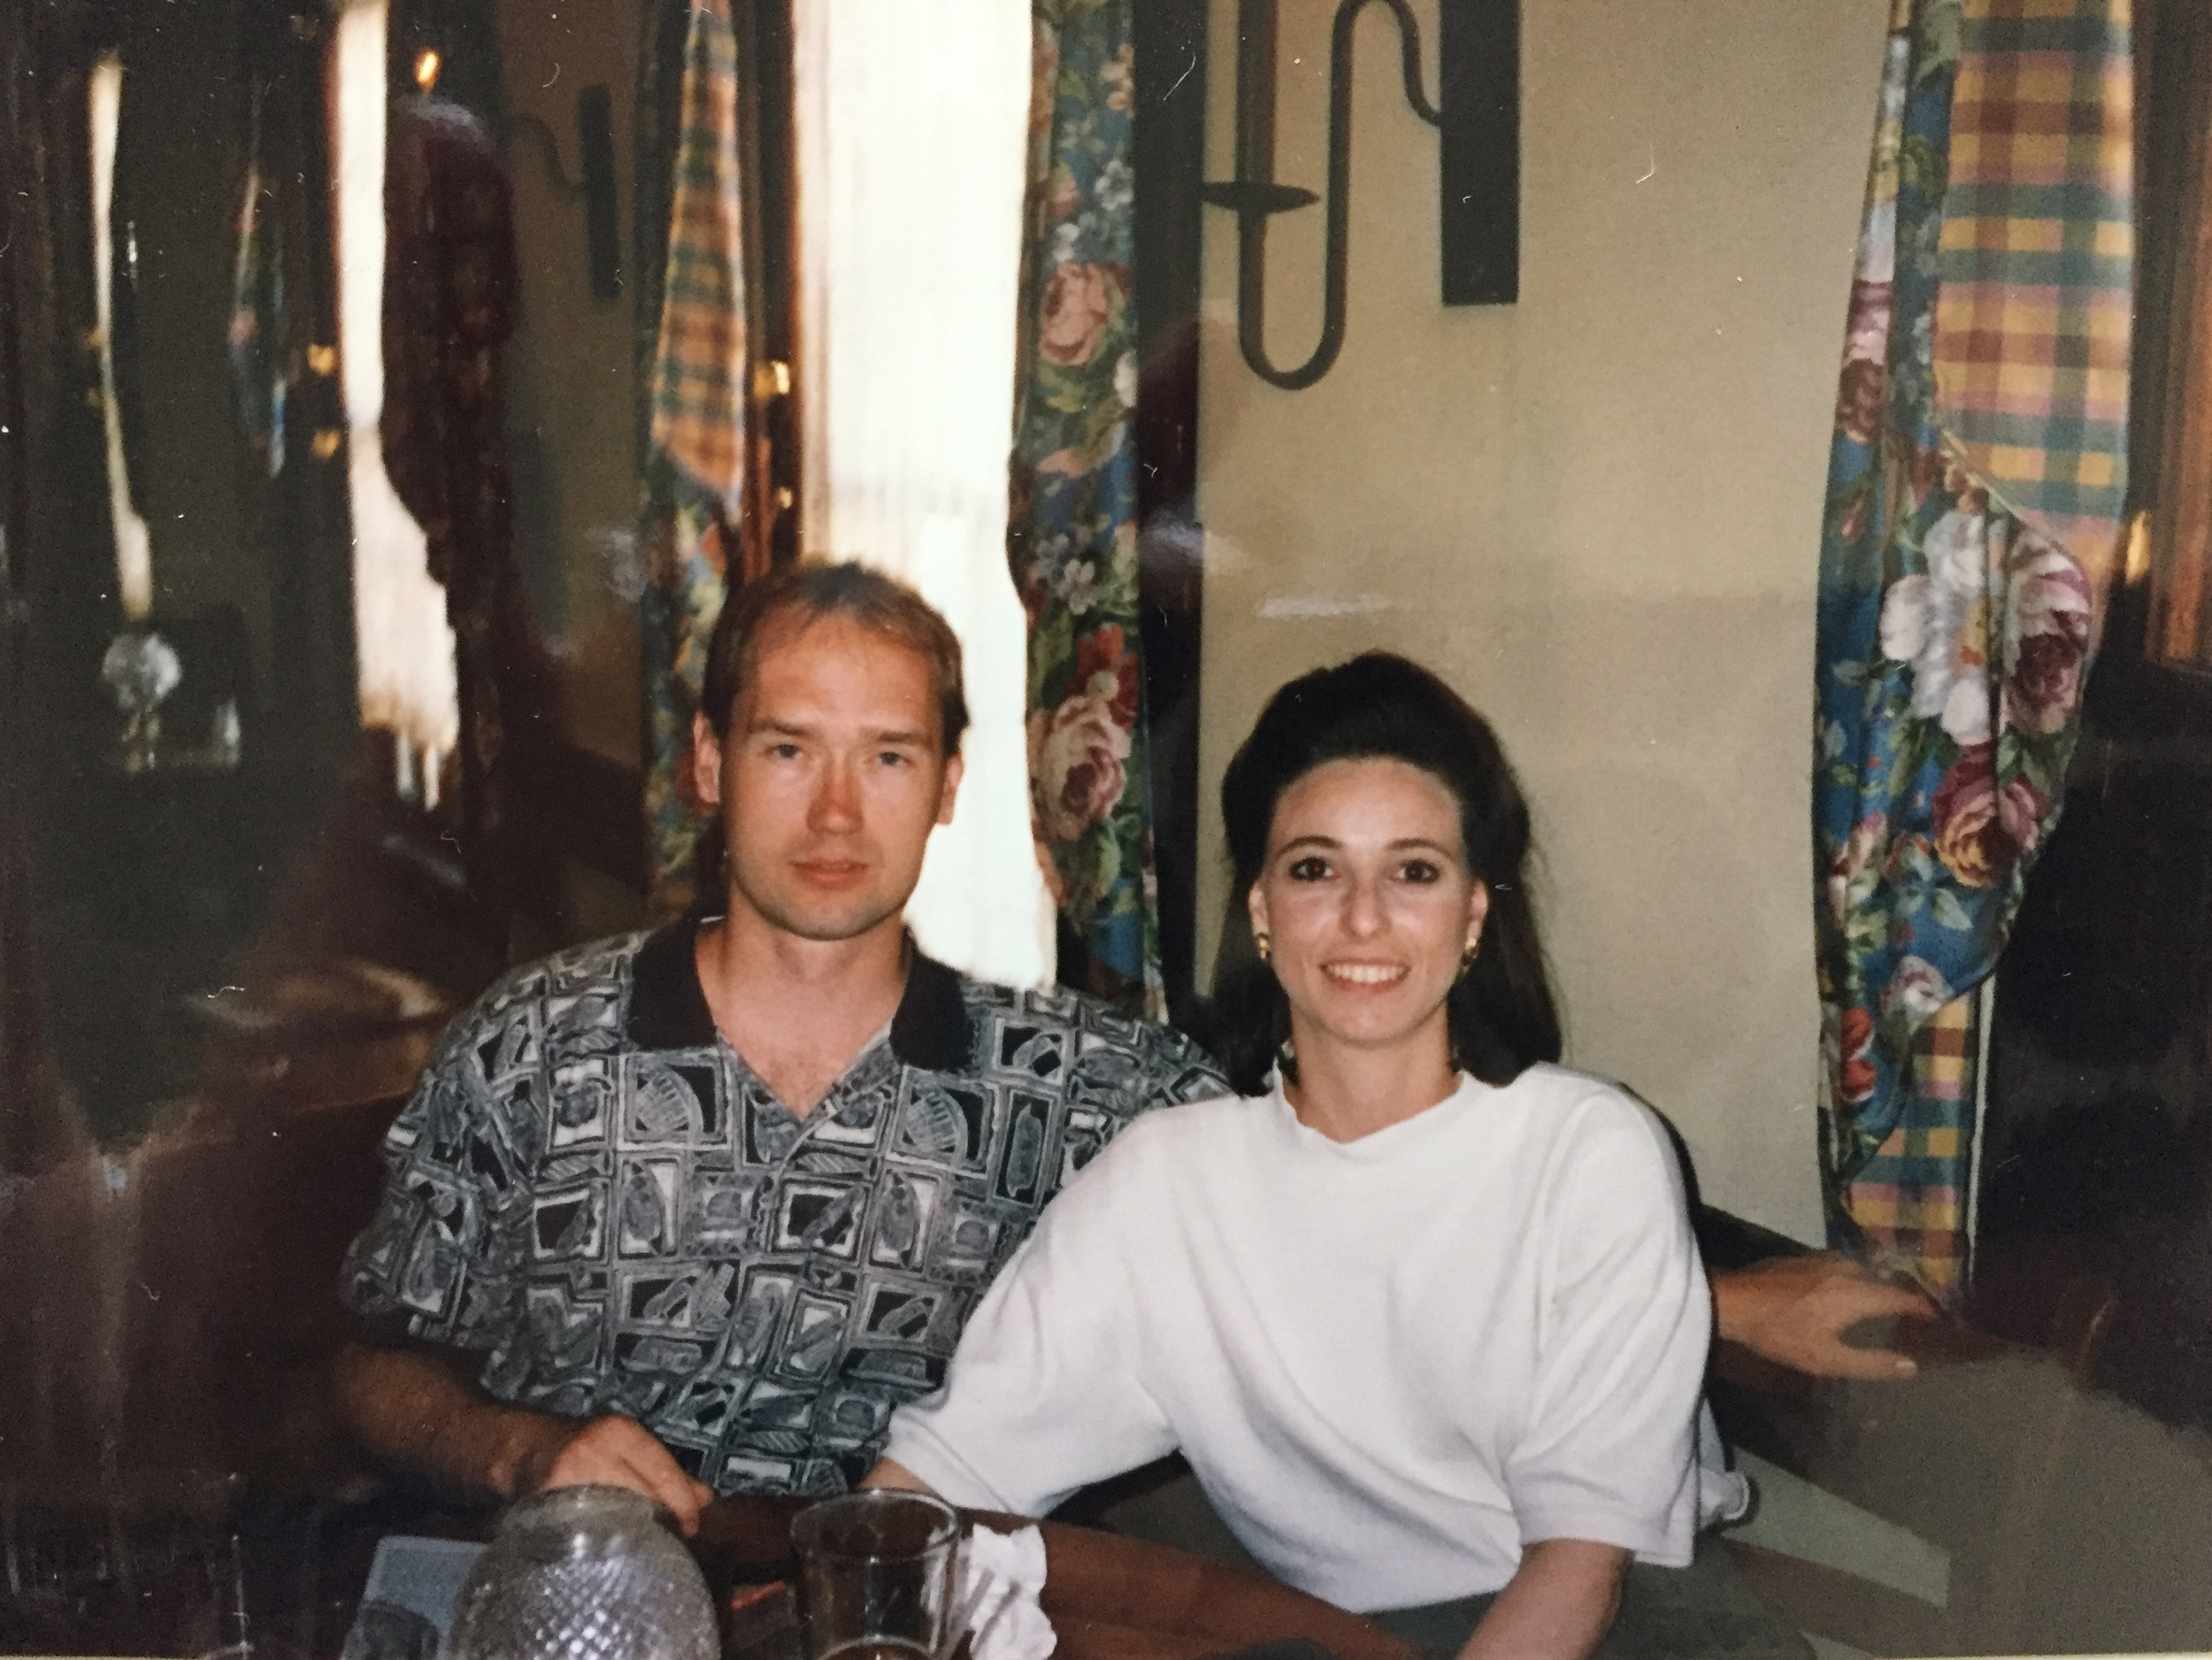 My then boyfriend (now husband) and me - not in Paris but in Boston, around the same time. Somehow, in the course of the nearly 20 years since that trip, between getting married, buying a house, having children and living life, the photos from our Paris trip have squirreled themselves away somewhere. C'est la vie!